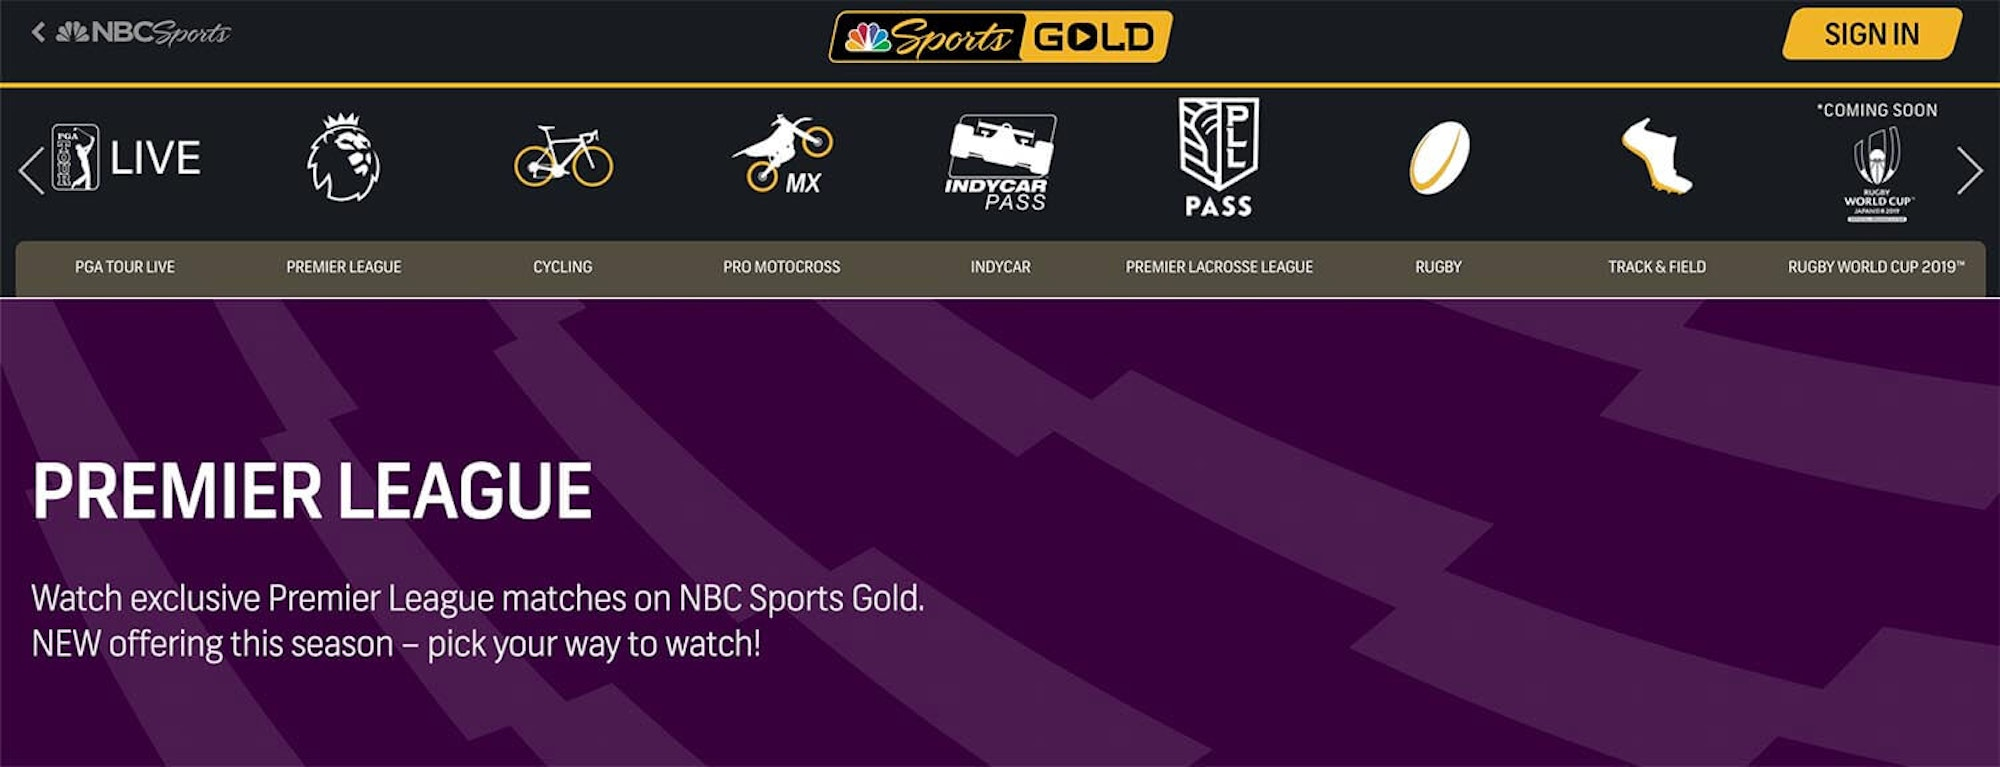 2019-20 premier league manchester city vs crystal palace soccer live stream free nbc sports gold